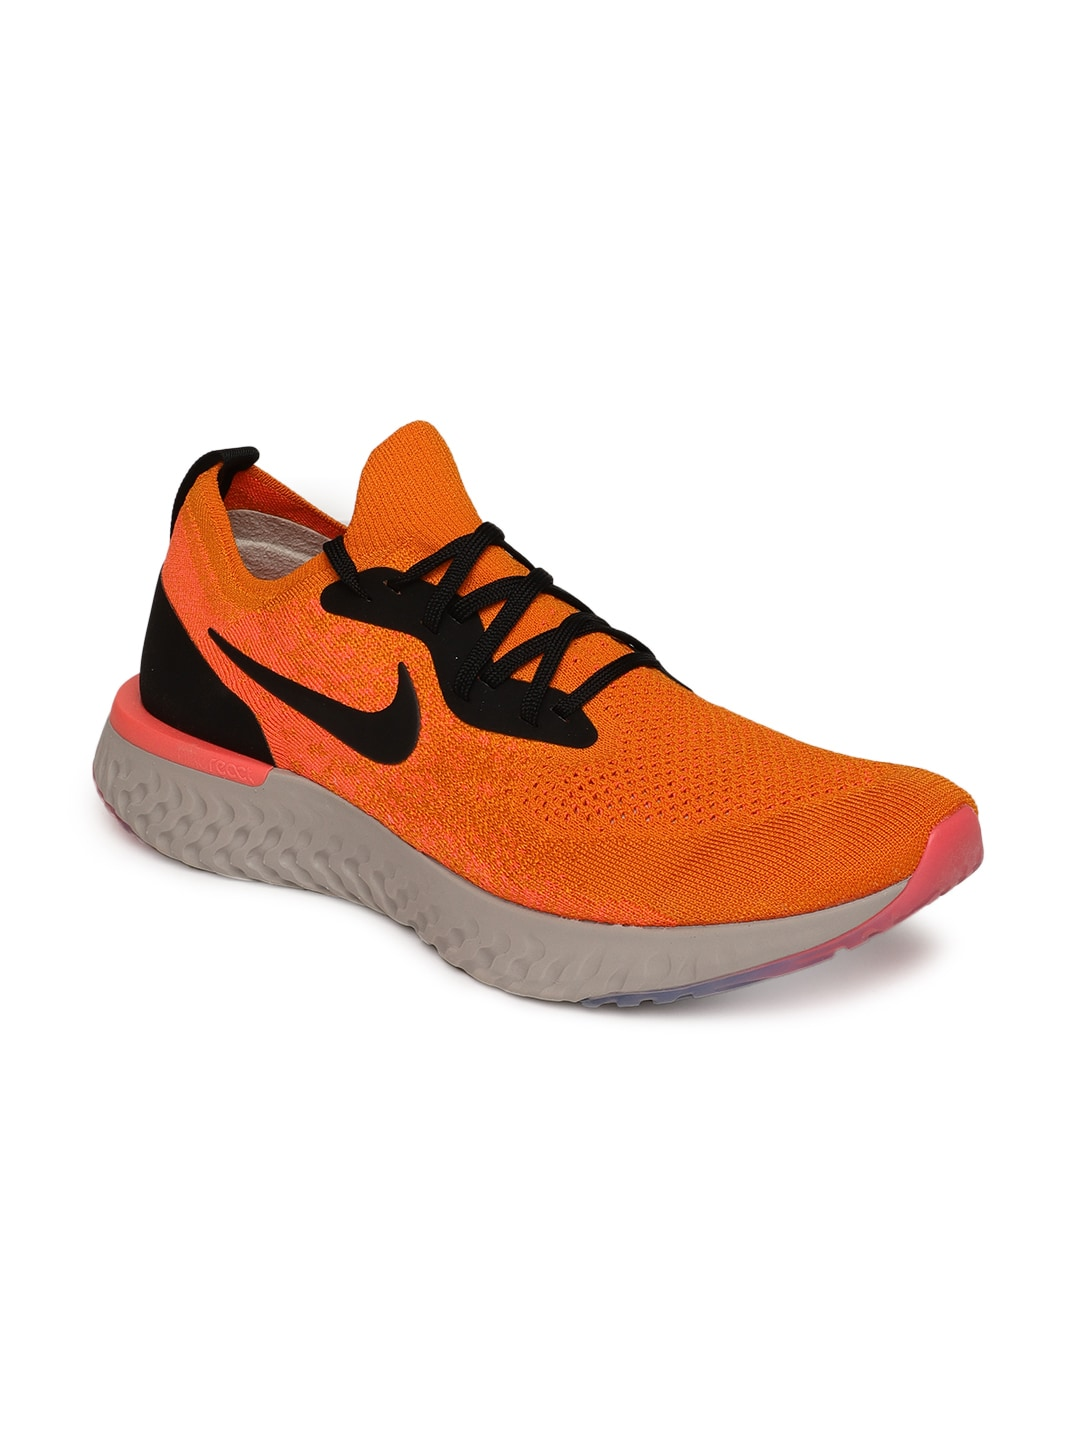 Nike - Shop for Nike Apparels Online in India  3210801c748f